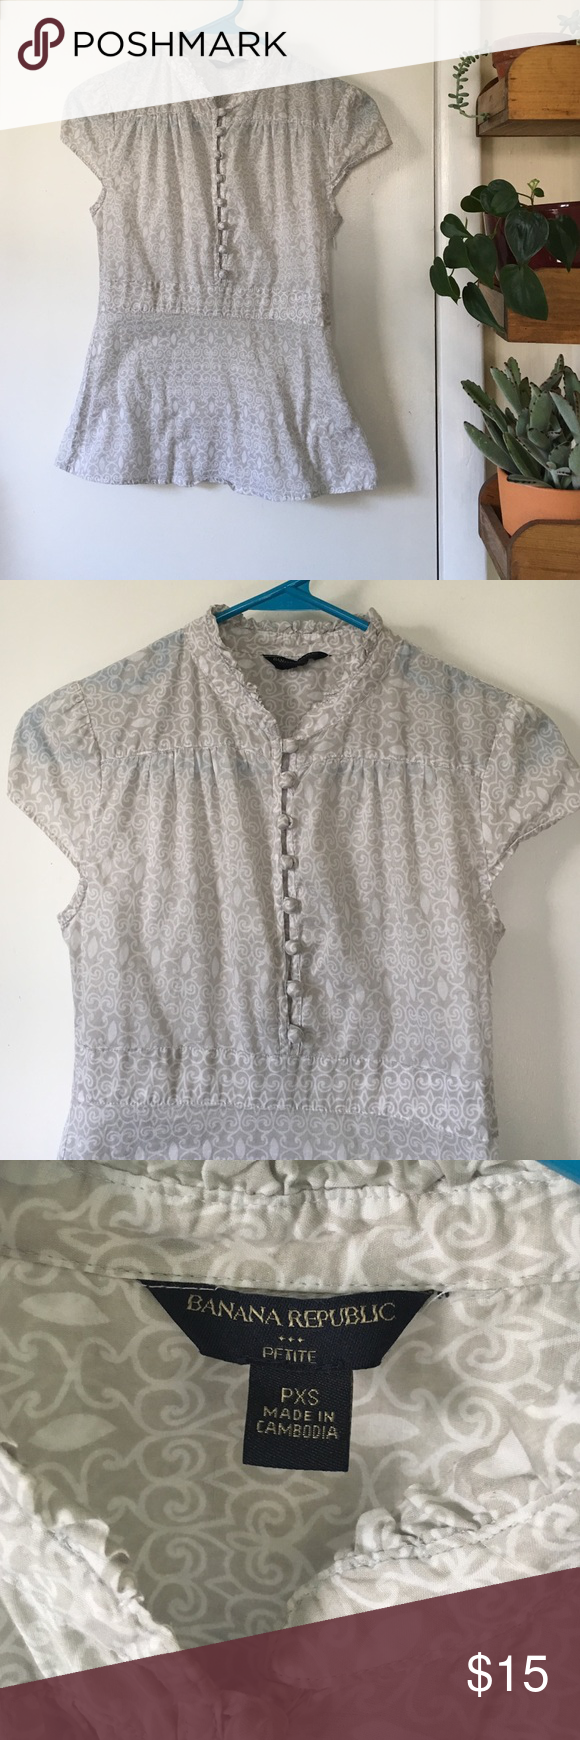 Banana Republic Cap Sleeve Blouse Petite size extra small! Like new! Cute cap sleeve/babydoll style shirt with buttons in front and ruffled collar. Zips on side for a fitted look. Perfect paired with jeans and wedges. Thin and a little see thru but that's why we have a collection of bralettes right?! Banana Republic Tops Blouses